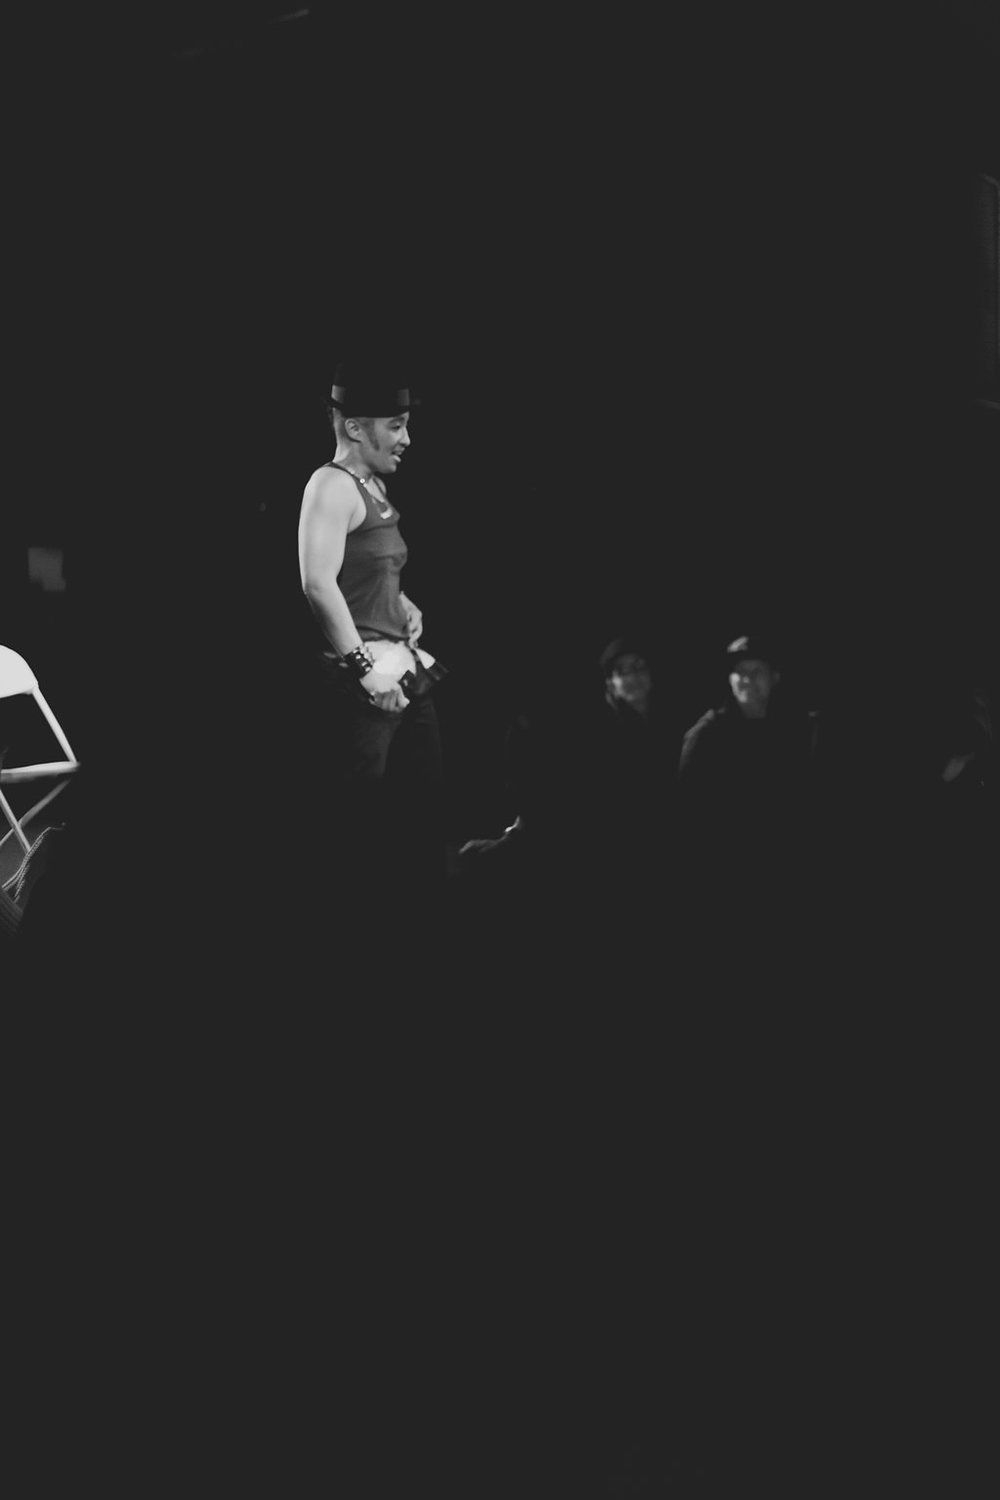 dragking(143of166).jpg